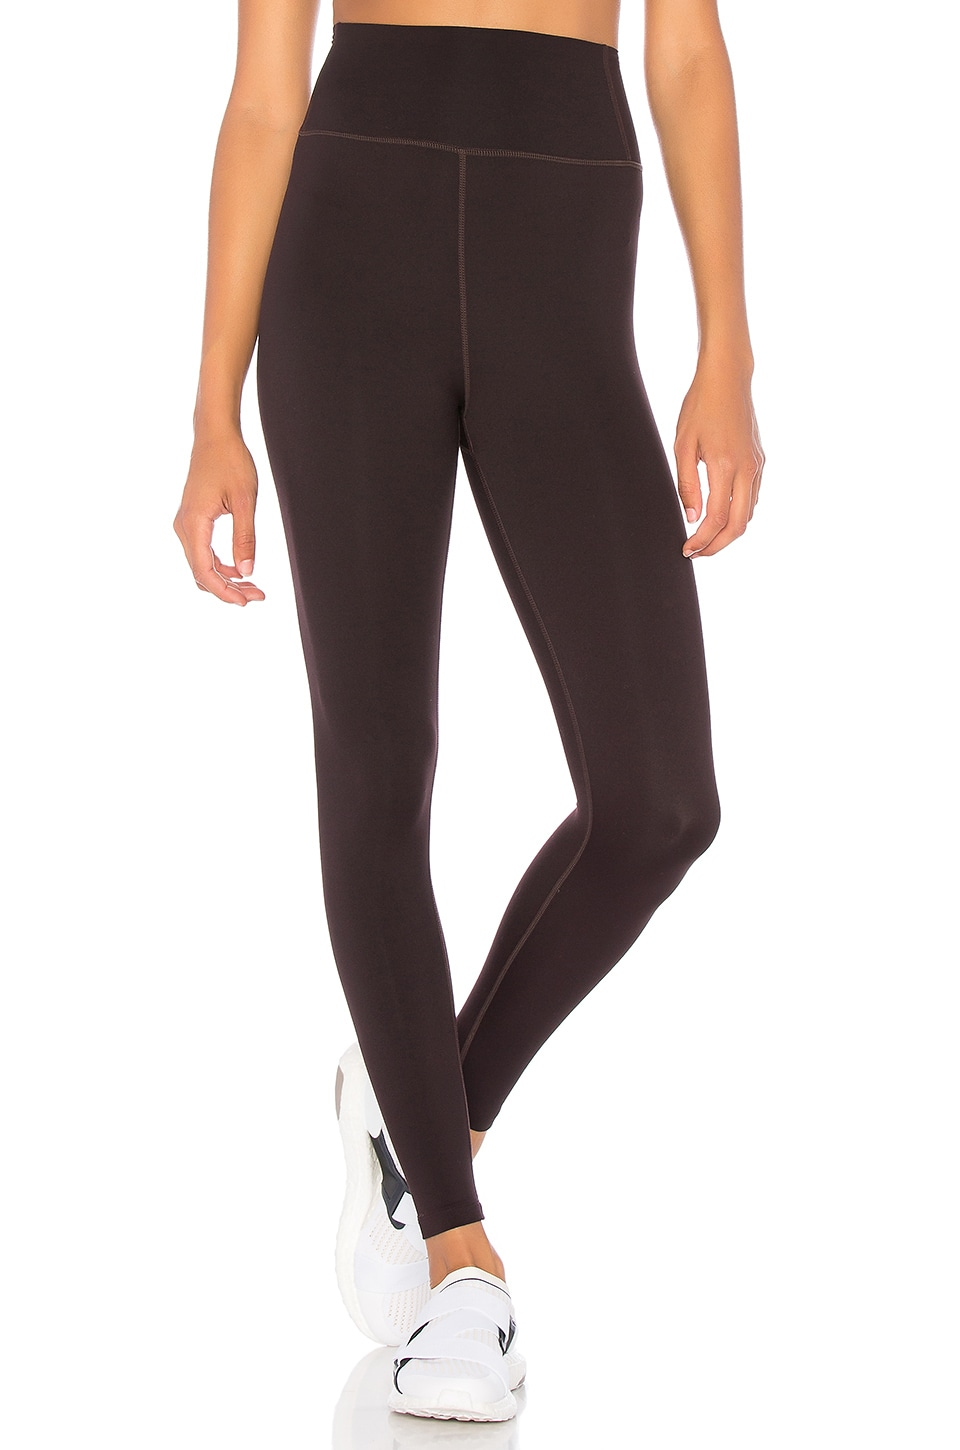 Splits59 Flow High Waist Legging in Dark Walnut